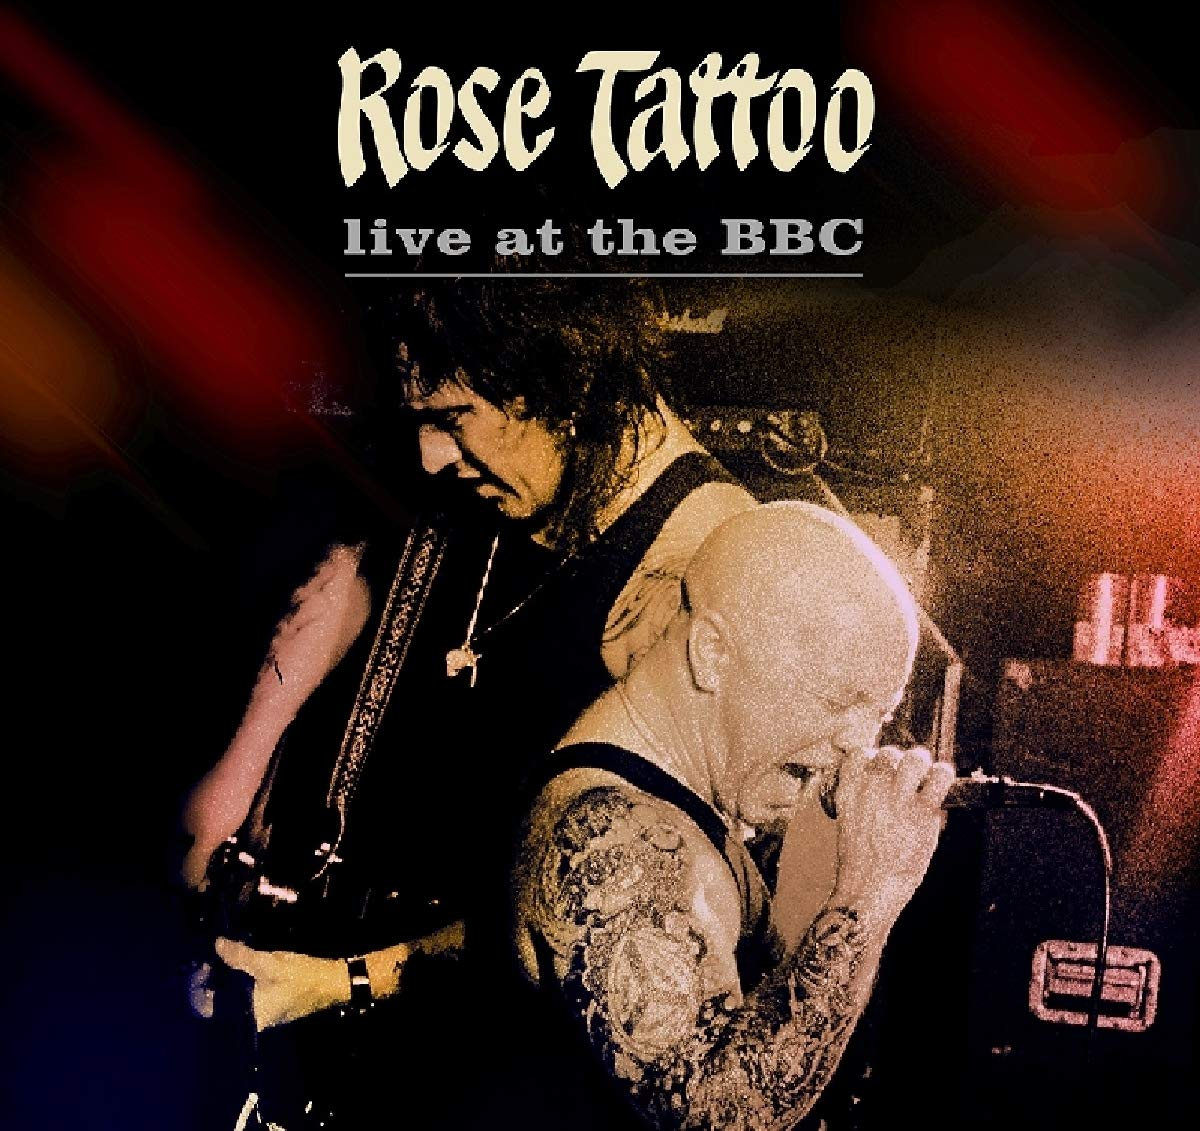 Rose Tattoo - On Air In 81: Live At Bbc & Other Transmissions